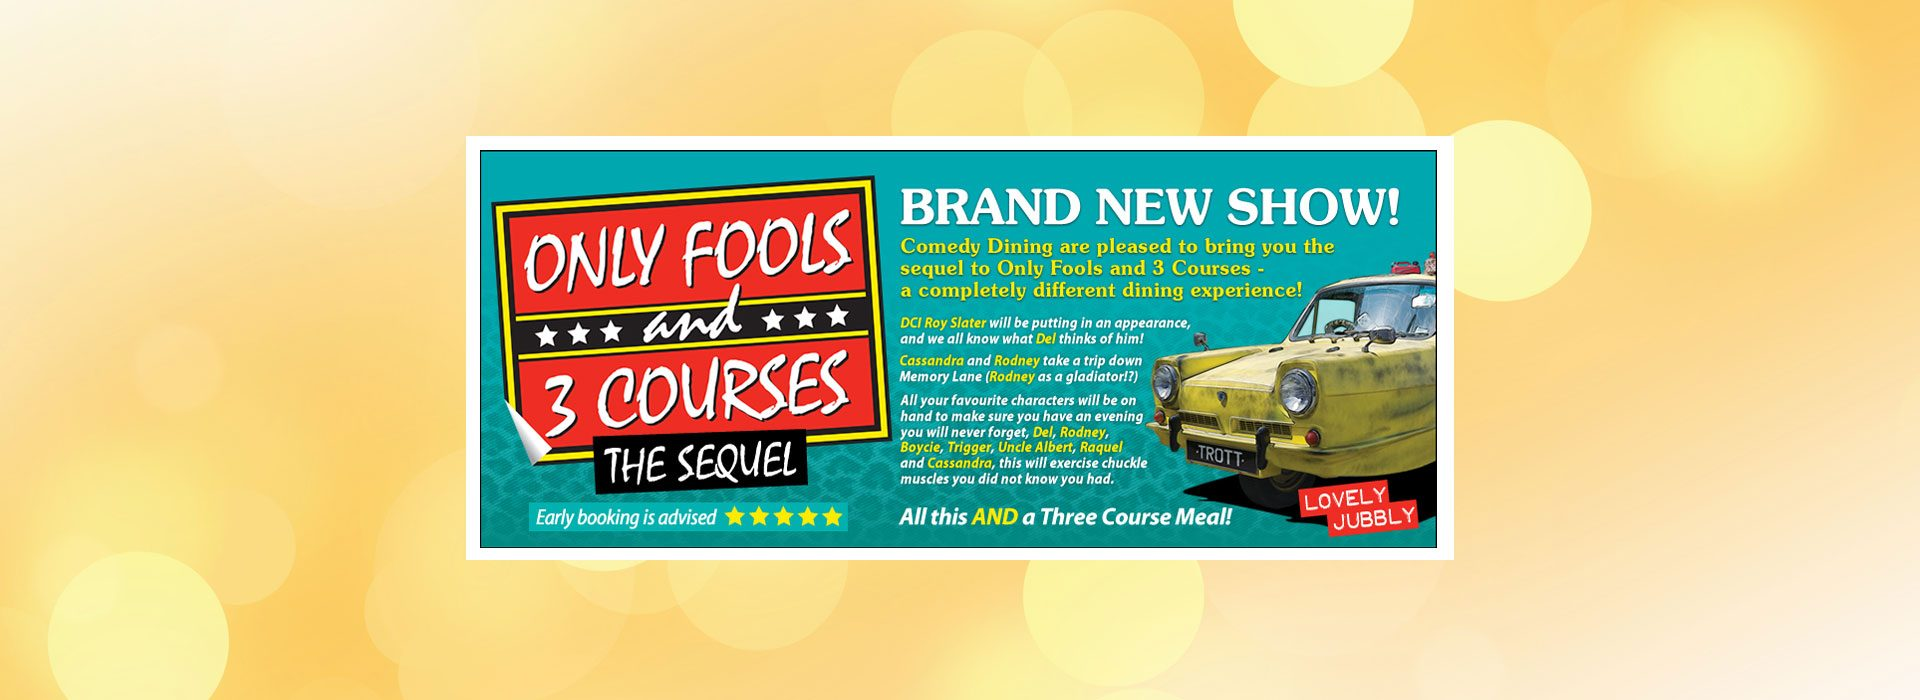 Only Fools & 3 Courses Sequel from Comedy Dining